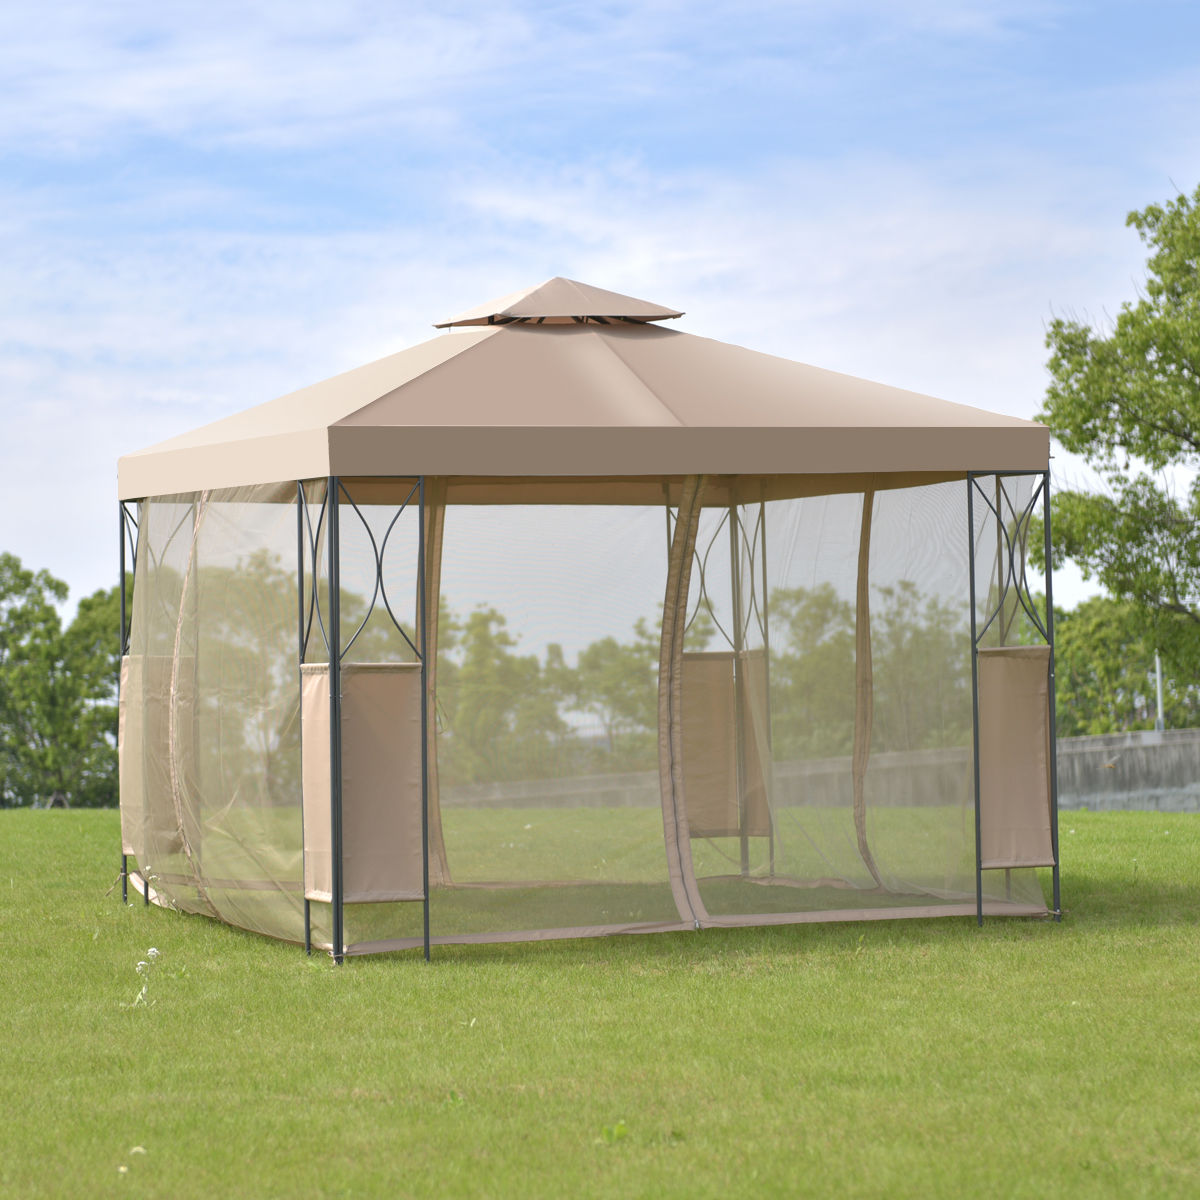 Costway 2-Tier 10u0027x10u0027 Gazebo Canopy Tent Shelter Awning Steel Patio Garden : brown canopy tent - memphite.com